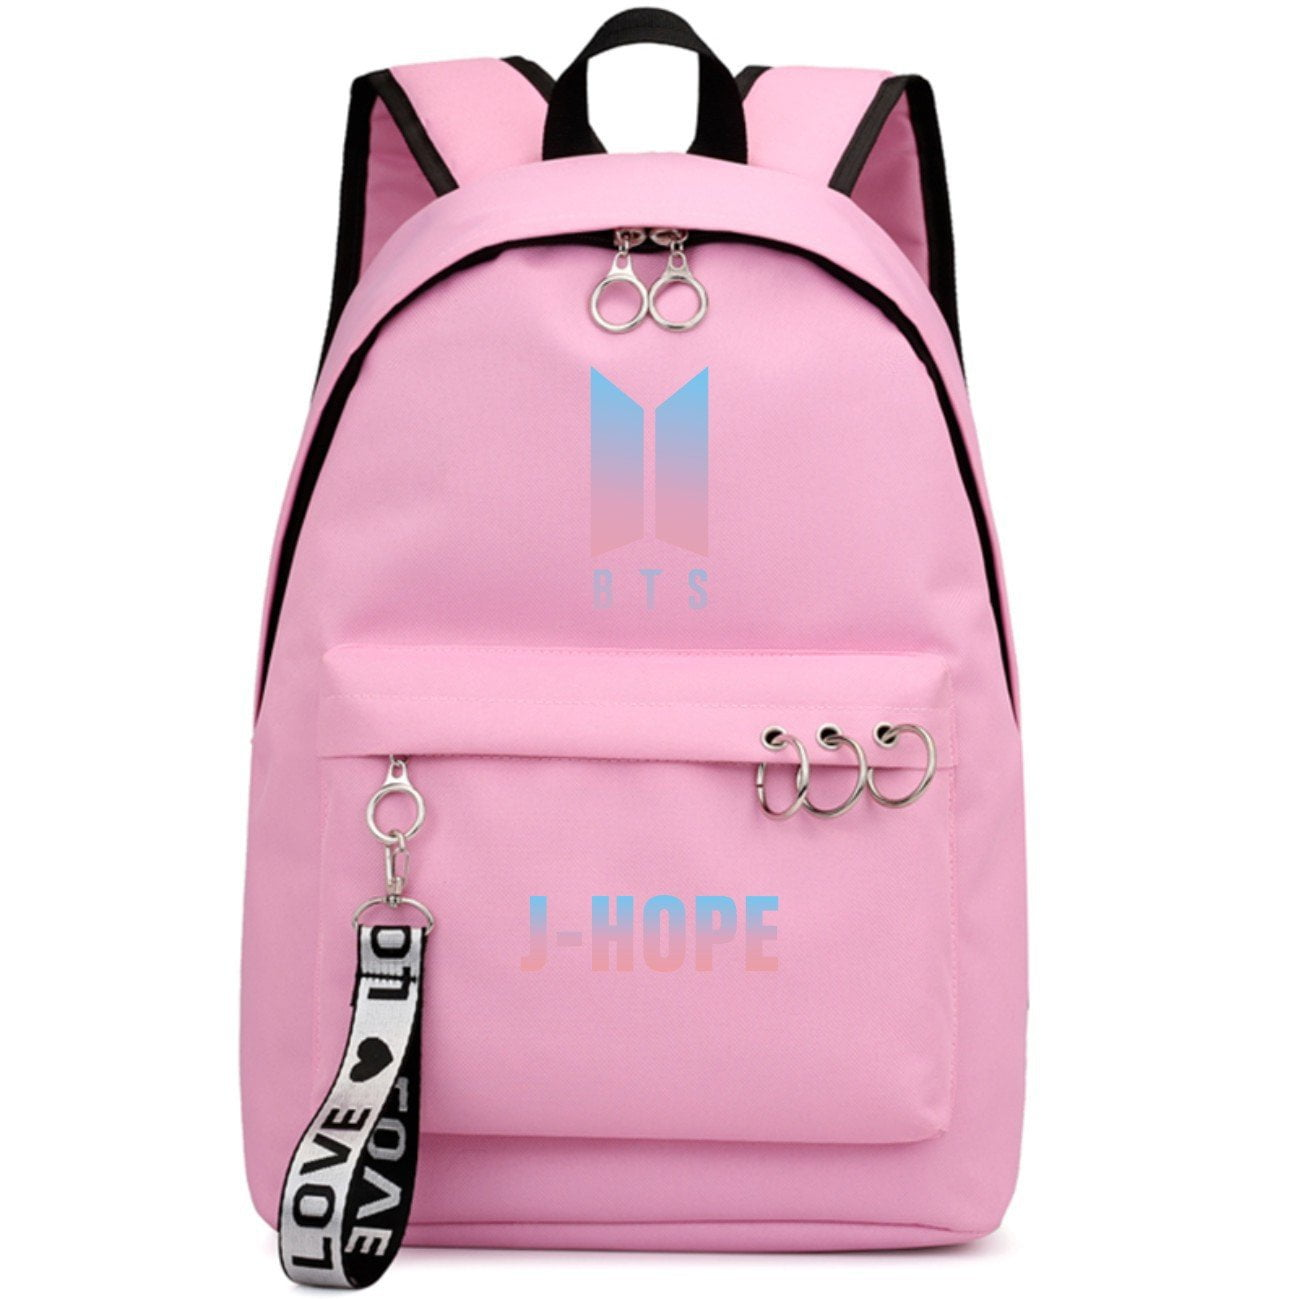 BTS New Logo Large Capacity Backpack / School Bag with Silver Rings in 2 Colours  583071224455#3925845045035